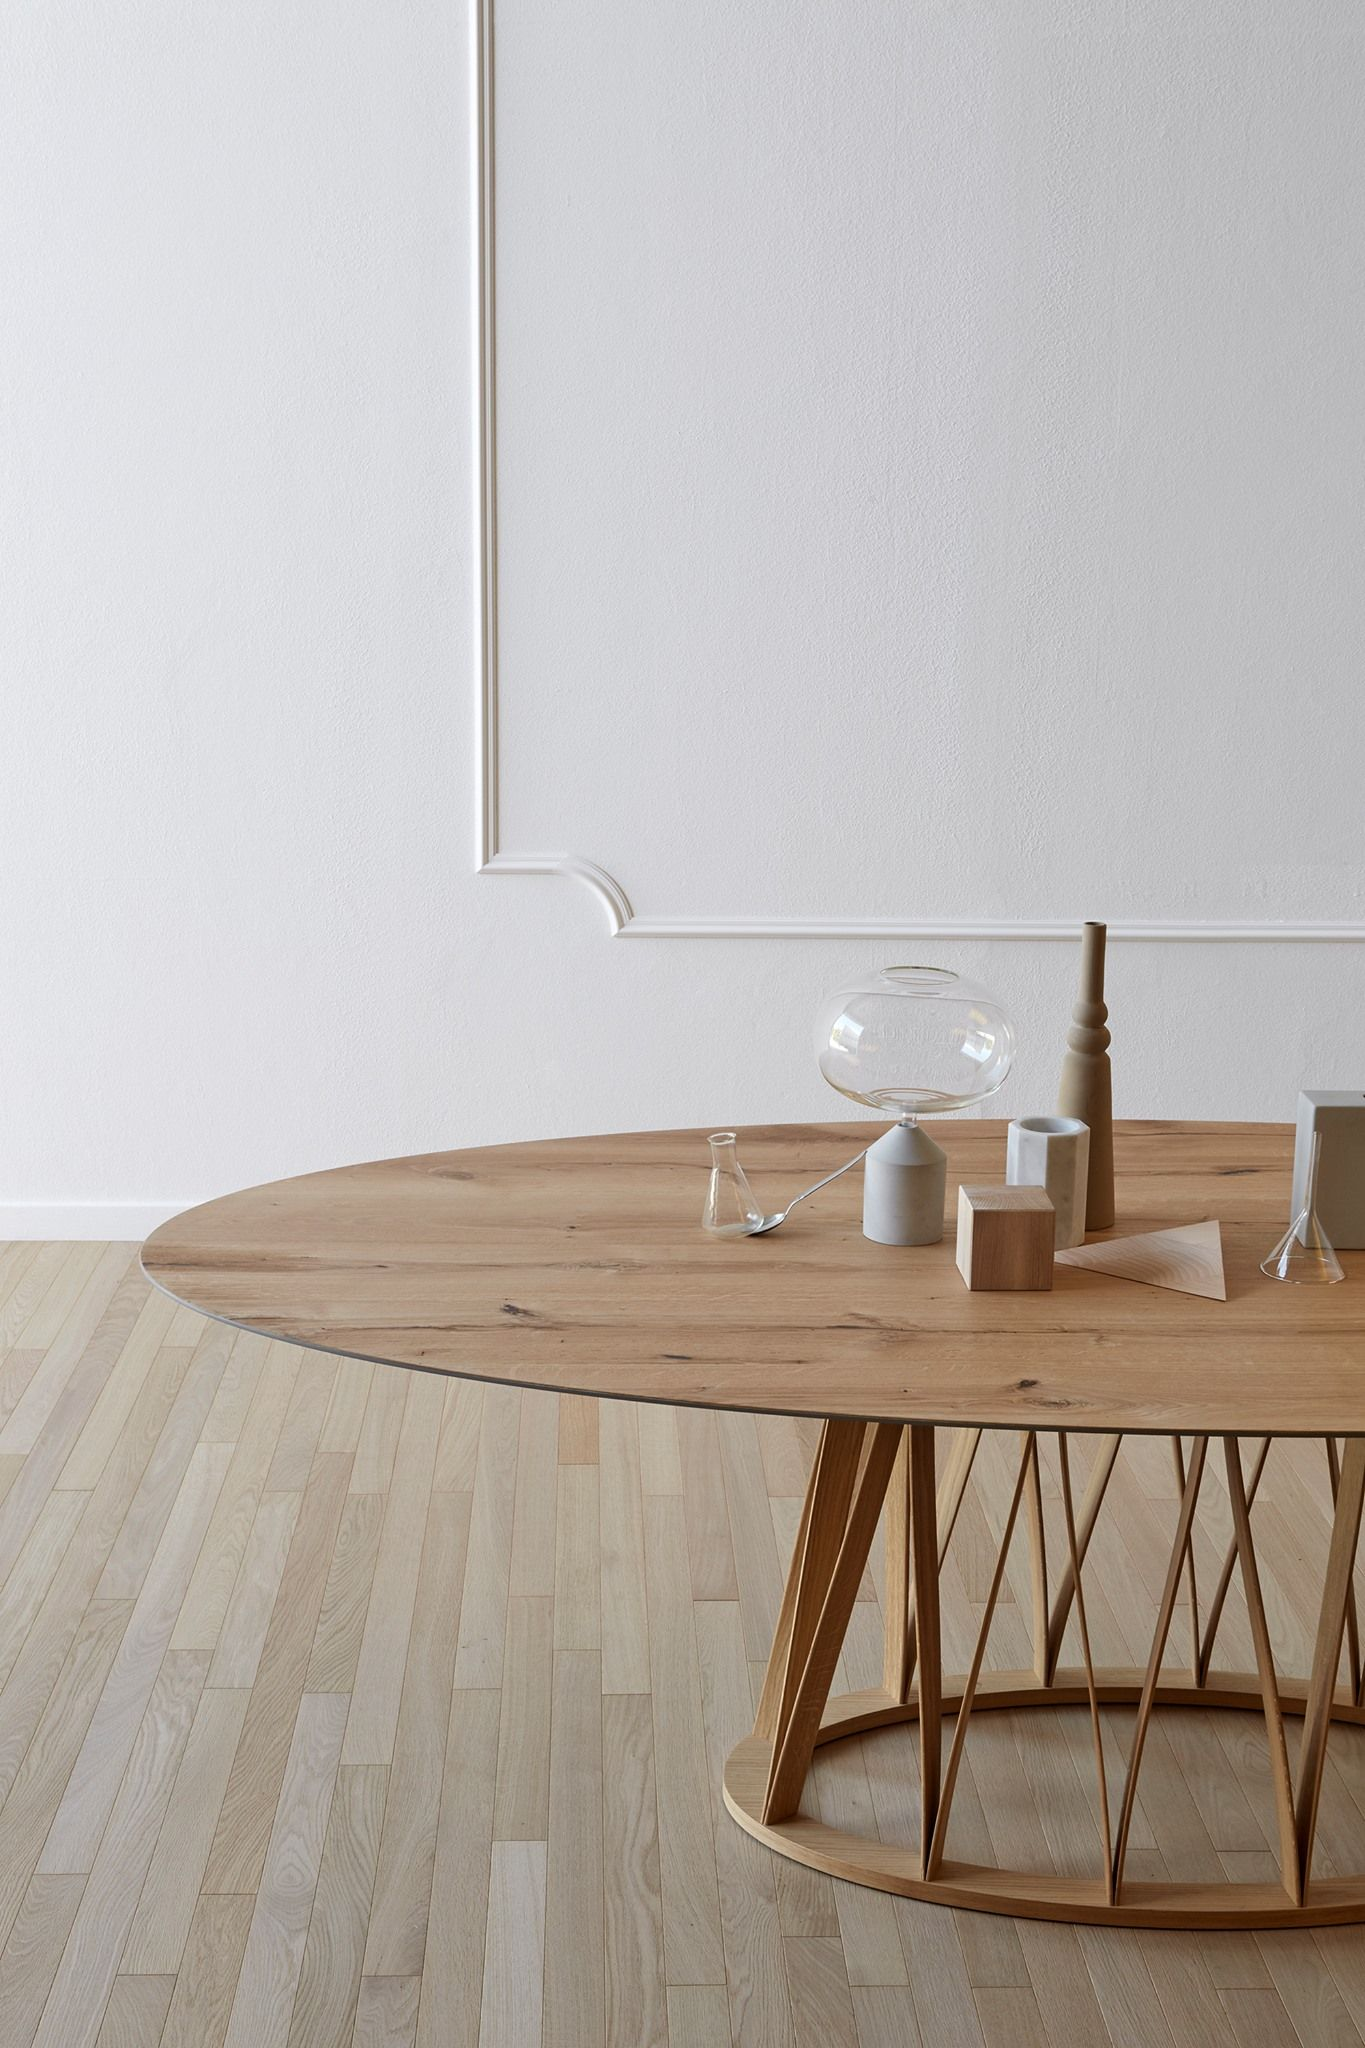 Carrelage Sur Fermacell Salle De Bain ~ Acco Table Miniform Florian Schmid Wood Tables Pinterest